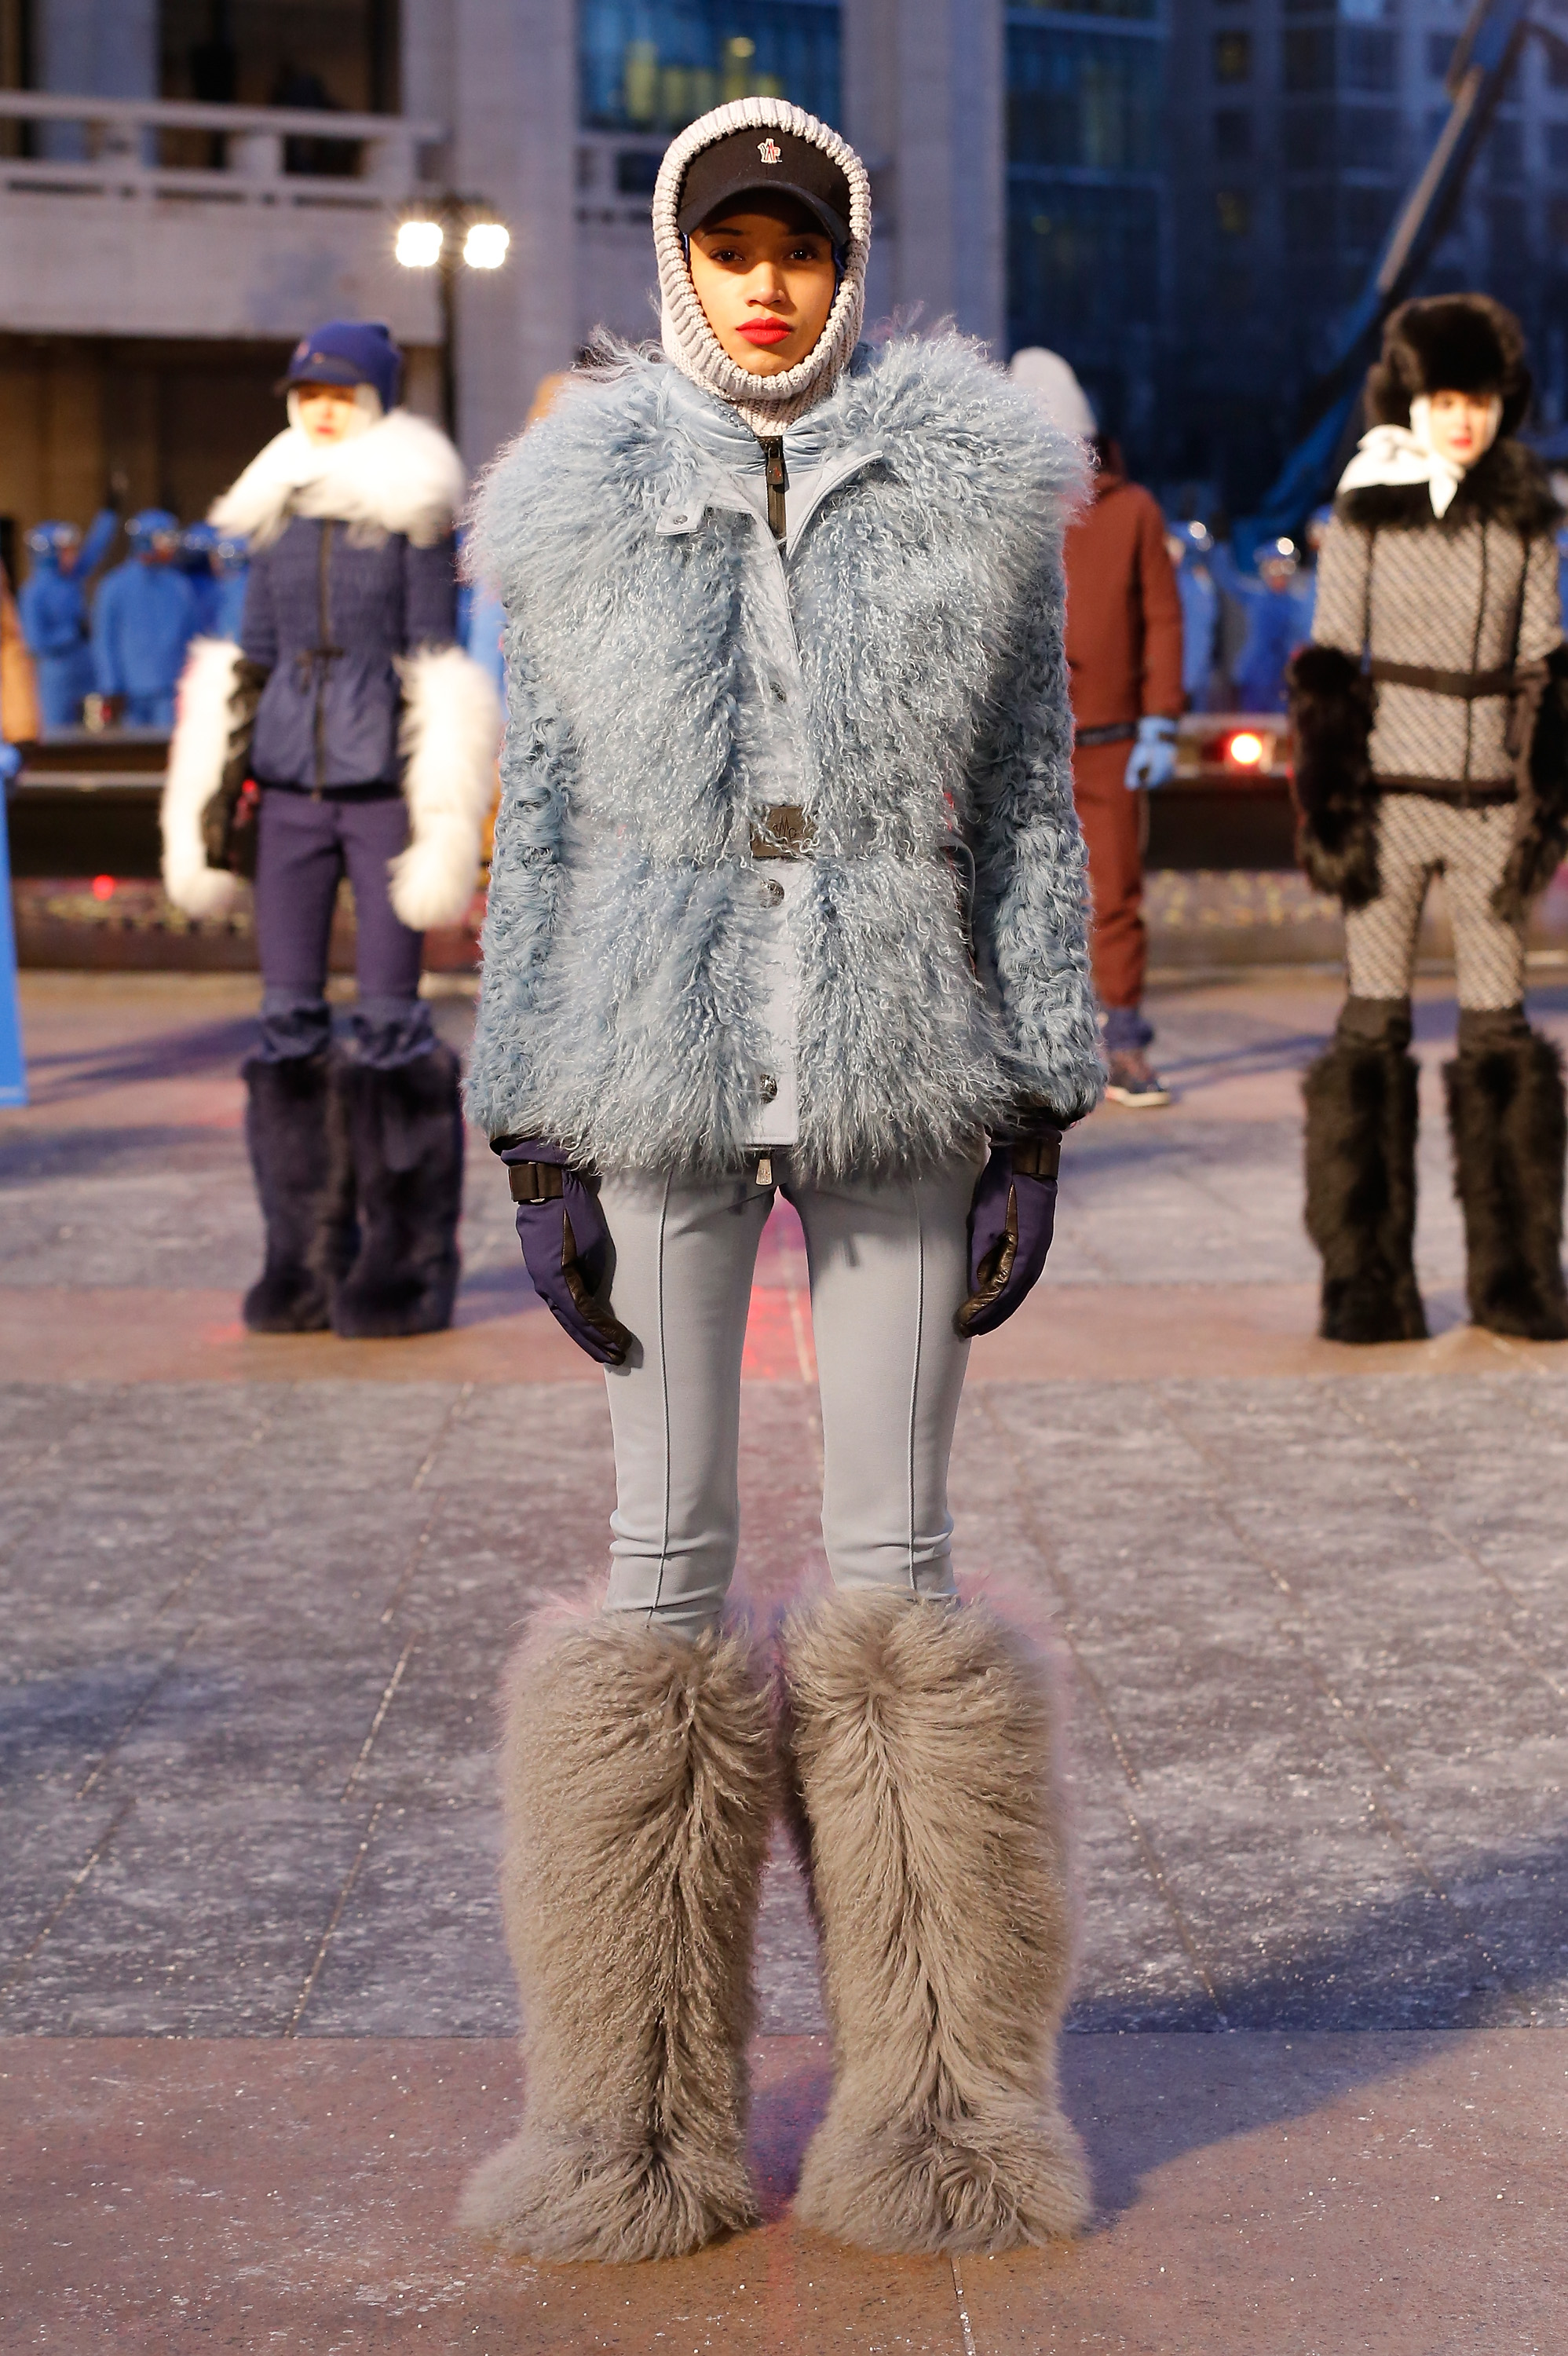 NEW YORK, NY - FEBRUARY 13:  A model poses during the Moncler Grenoble FW 16-17 presentation during New York Fashion Week at Lincoln Center on February 13, 2016 in New York City.  (Photo by JP Yim/Getty Images For Moncler Grenoble)